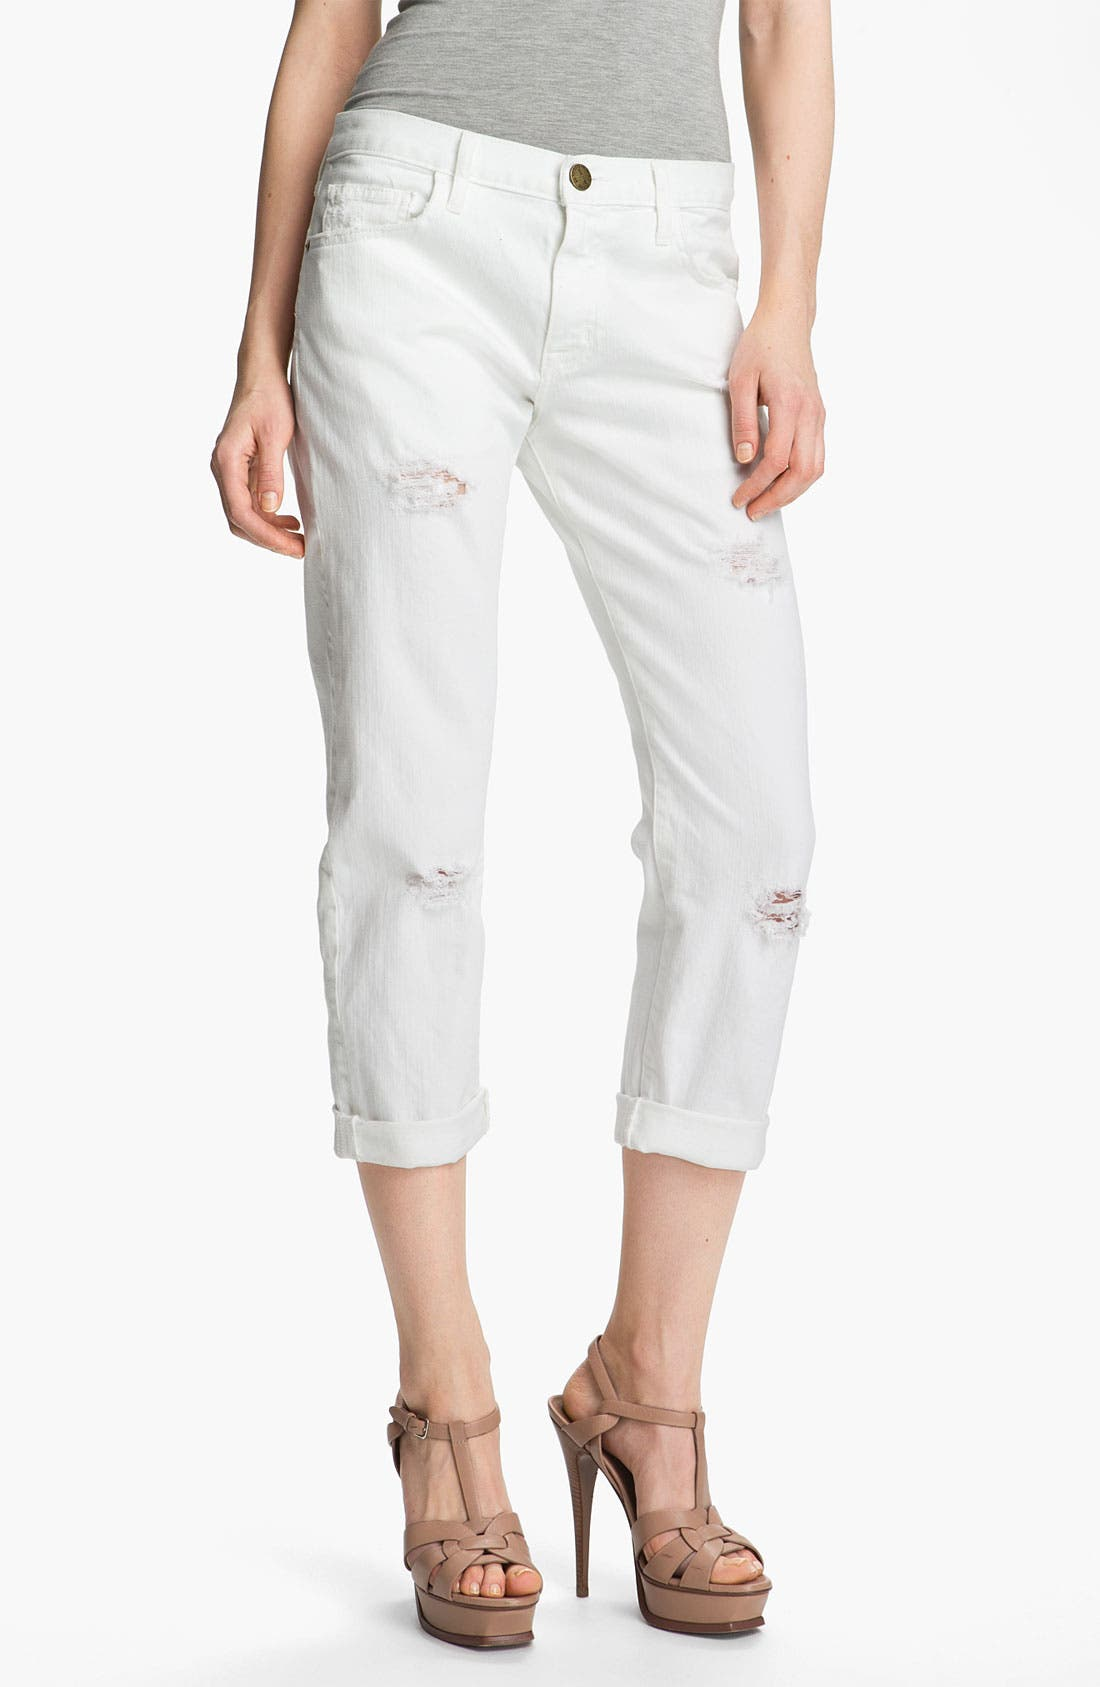 Alternate Image 1 Selected - Current/Elliott 'The Boyfriend Jean' Stretch Jeans (Sugar)